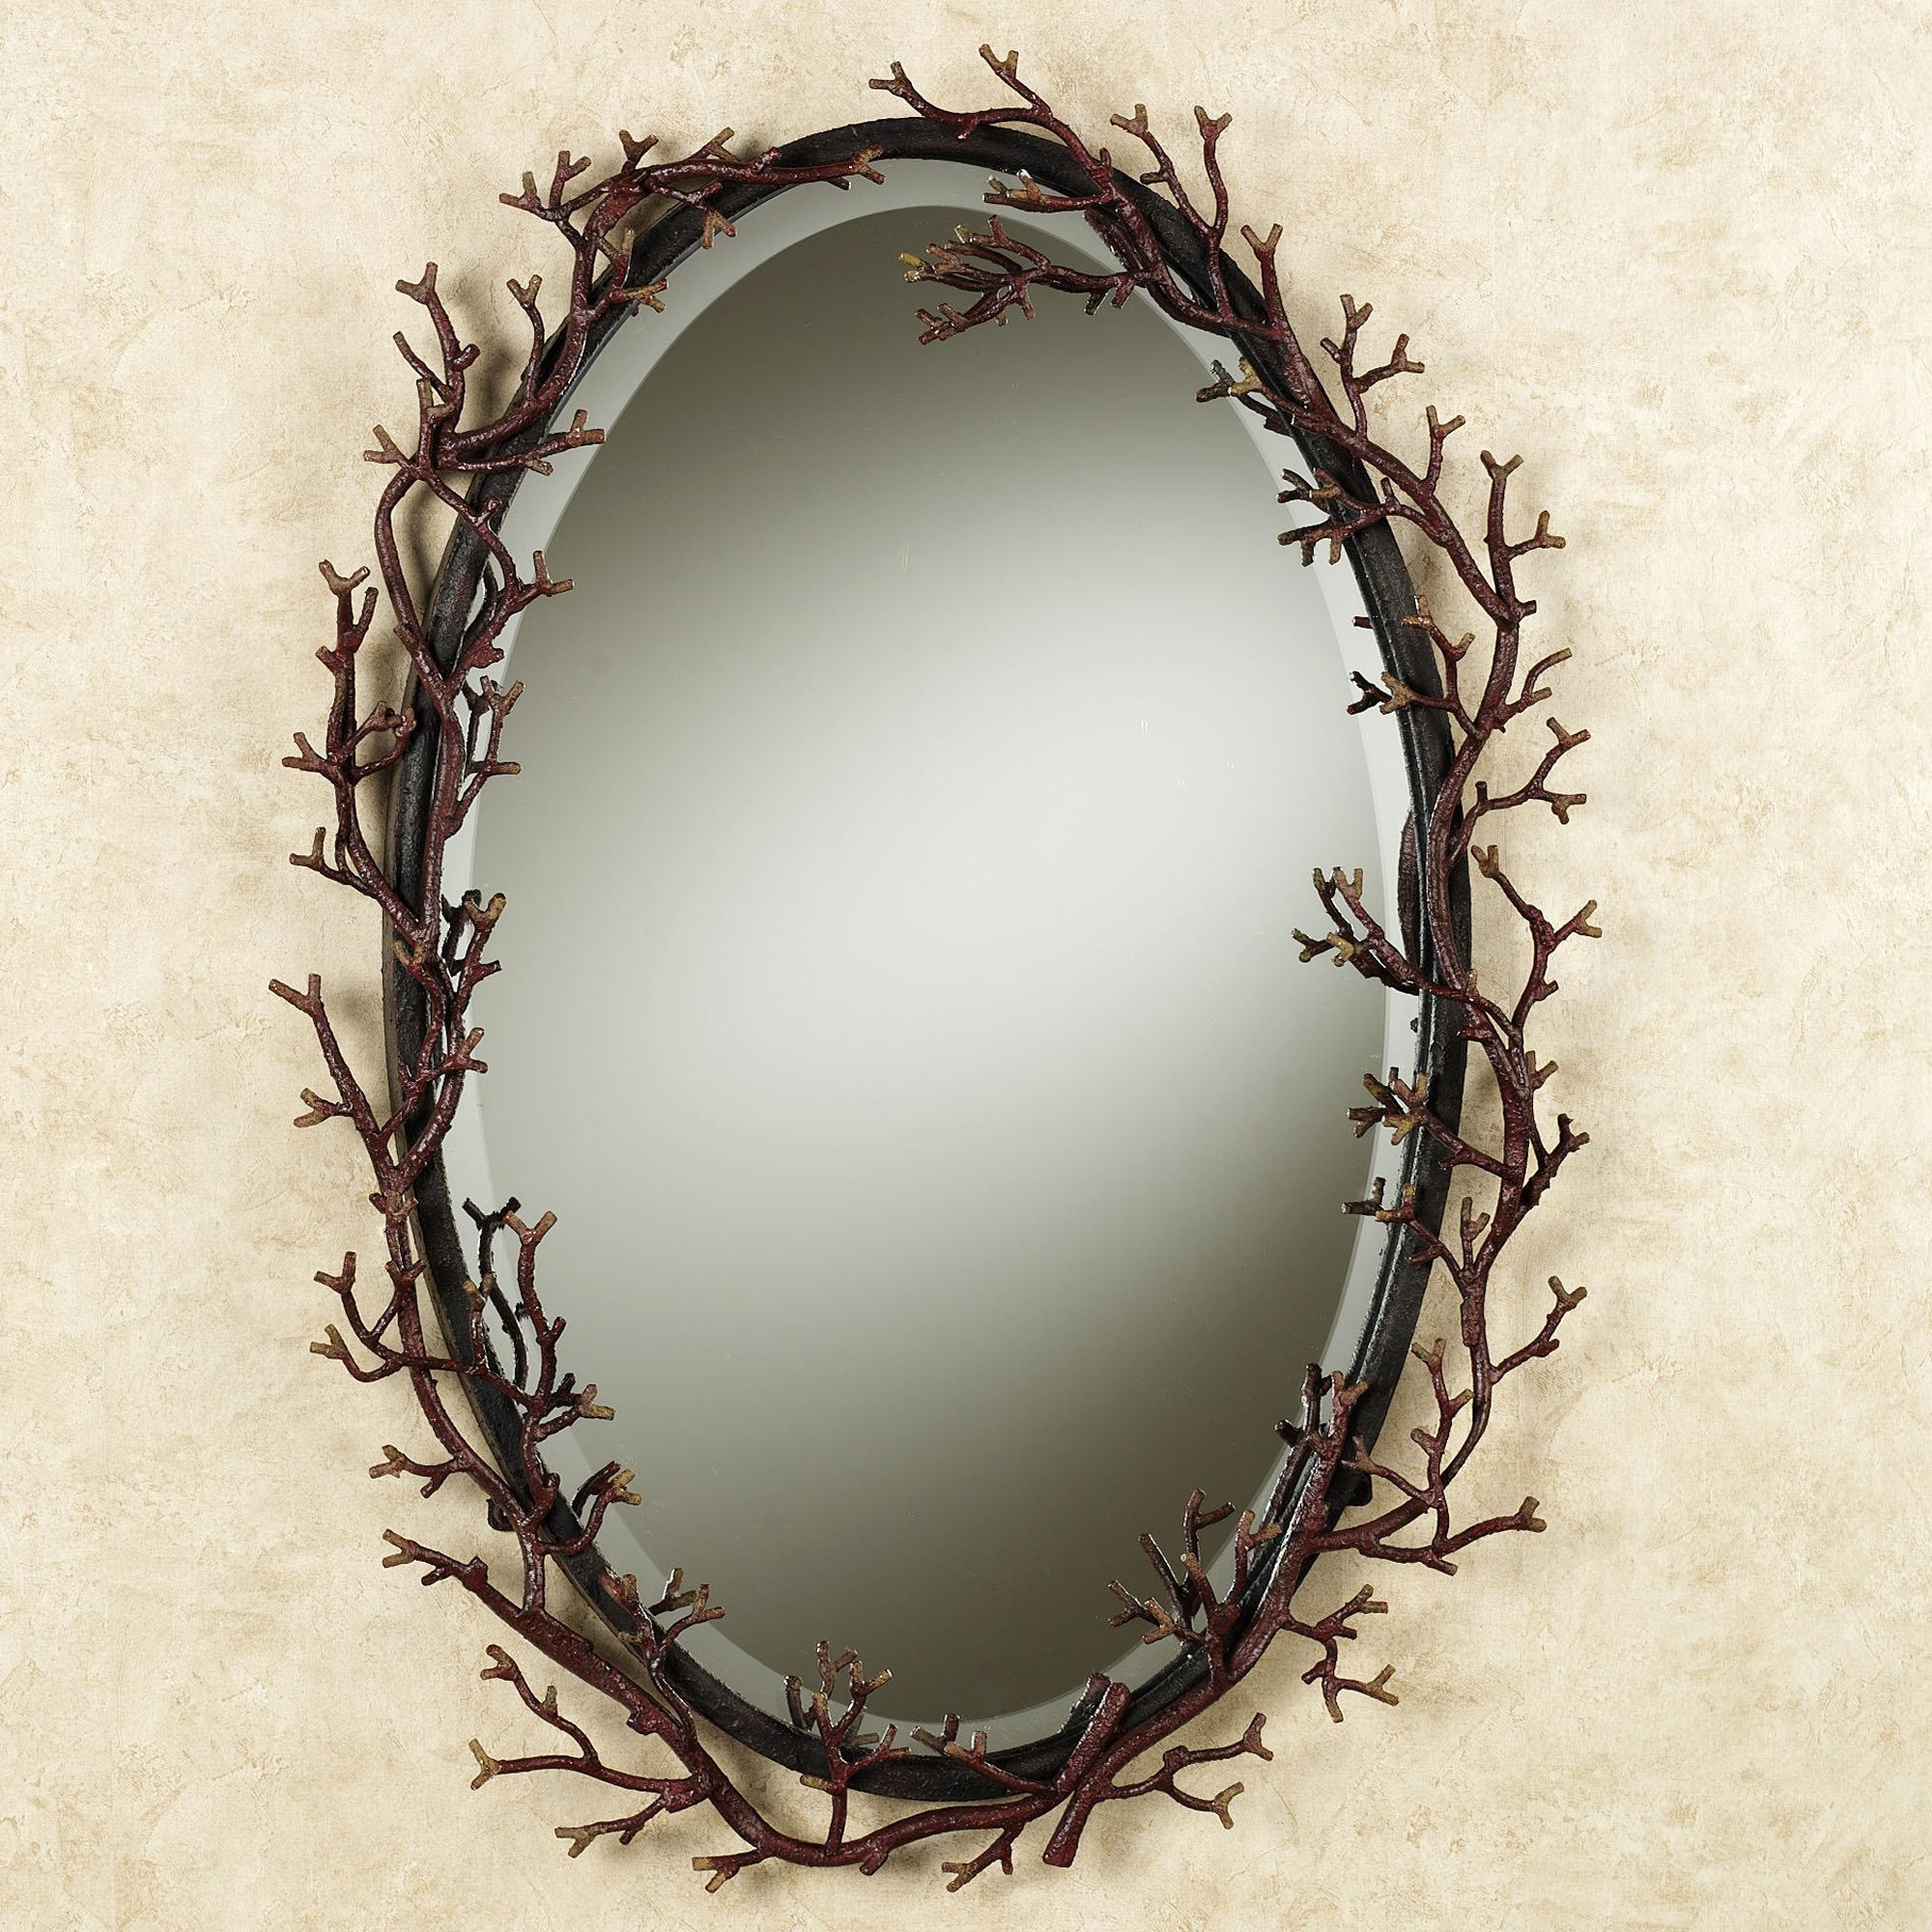 Wonderful Oval Shape Entryway Wall Mirrors With Iron Frames As Within Oval Shaped Wall Mirrors (Image 20 of 20)